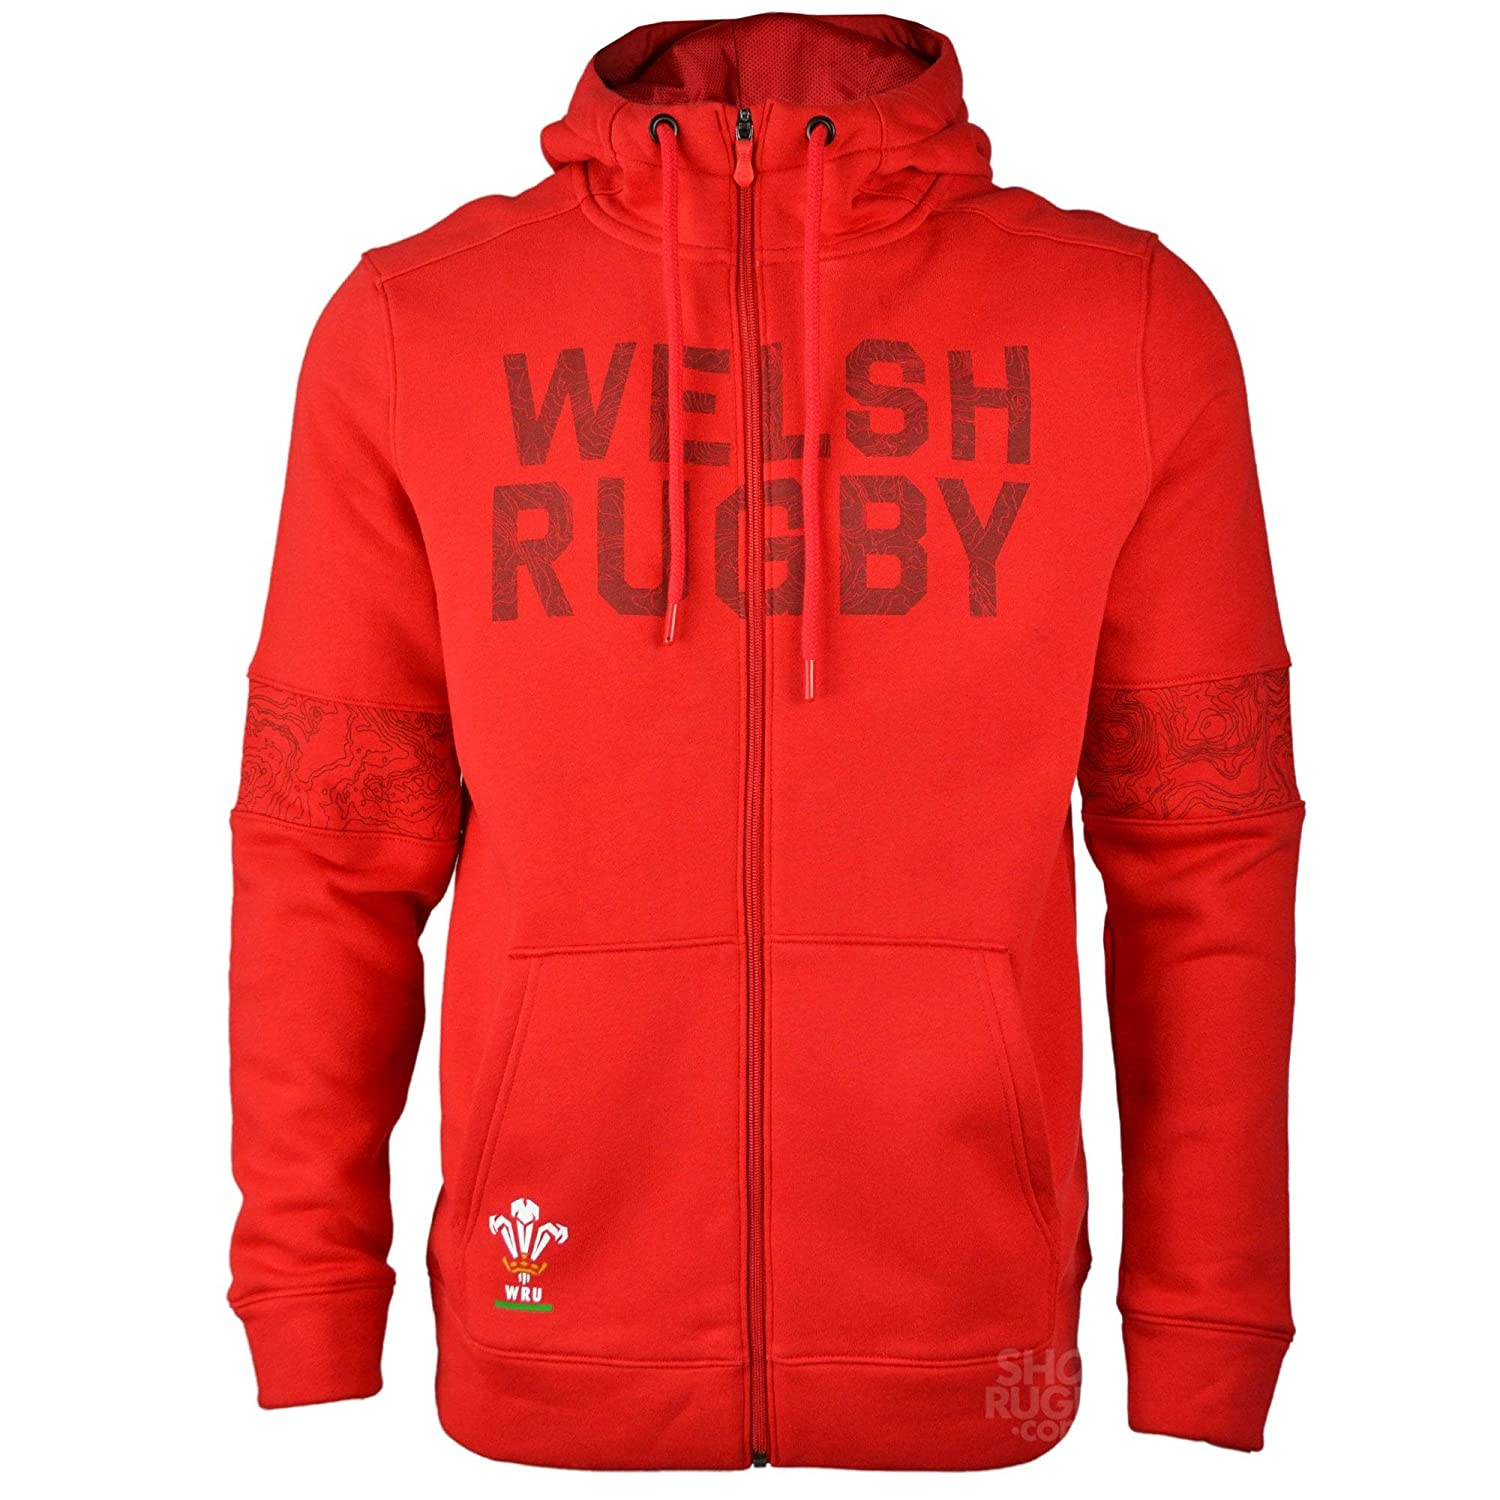 eb06e055c97 Under Armour Wales WRU Full Zip Hoodie 2018-2019 - Red: Amazon.co.uk:  Sports & Outdoors